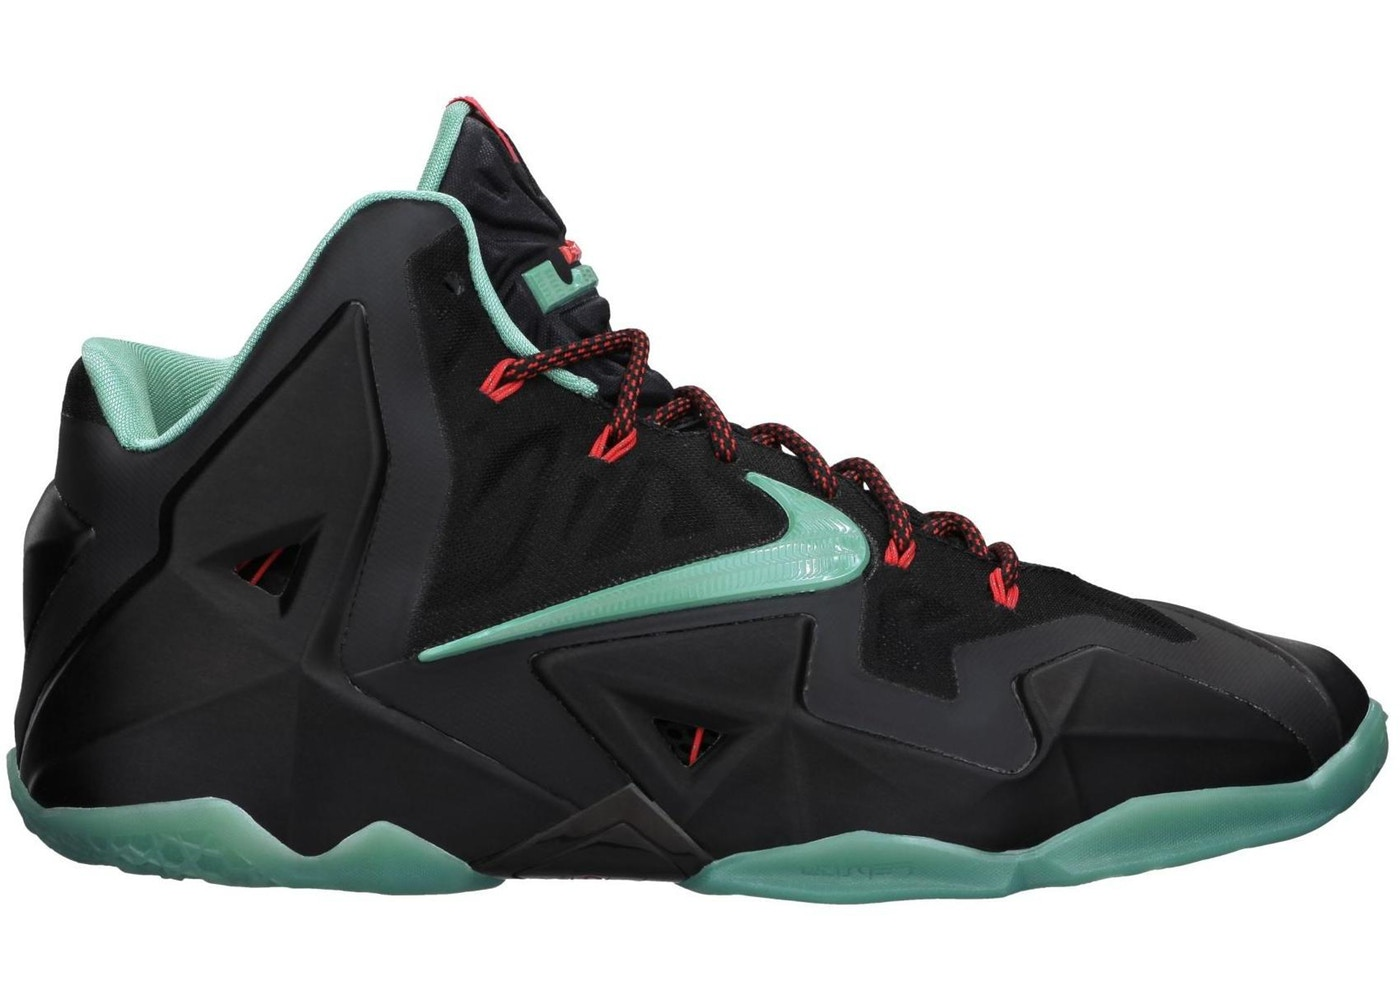 ナイキ NIKE レブロン スニーカー 【 LEBRON 11 DIFFUSED JADE BLACK JADELIGHT CRIMSON 】 メンズ